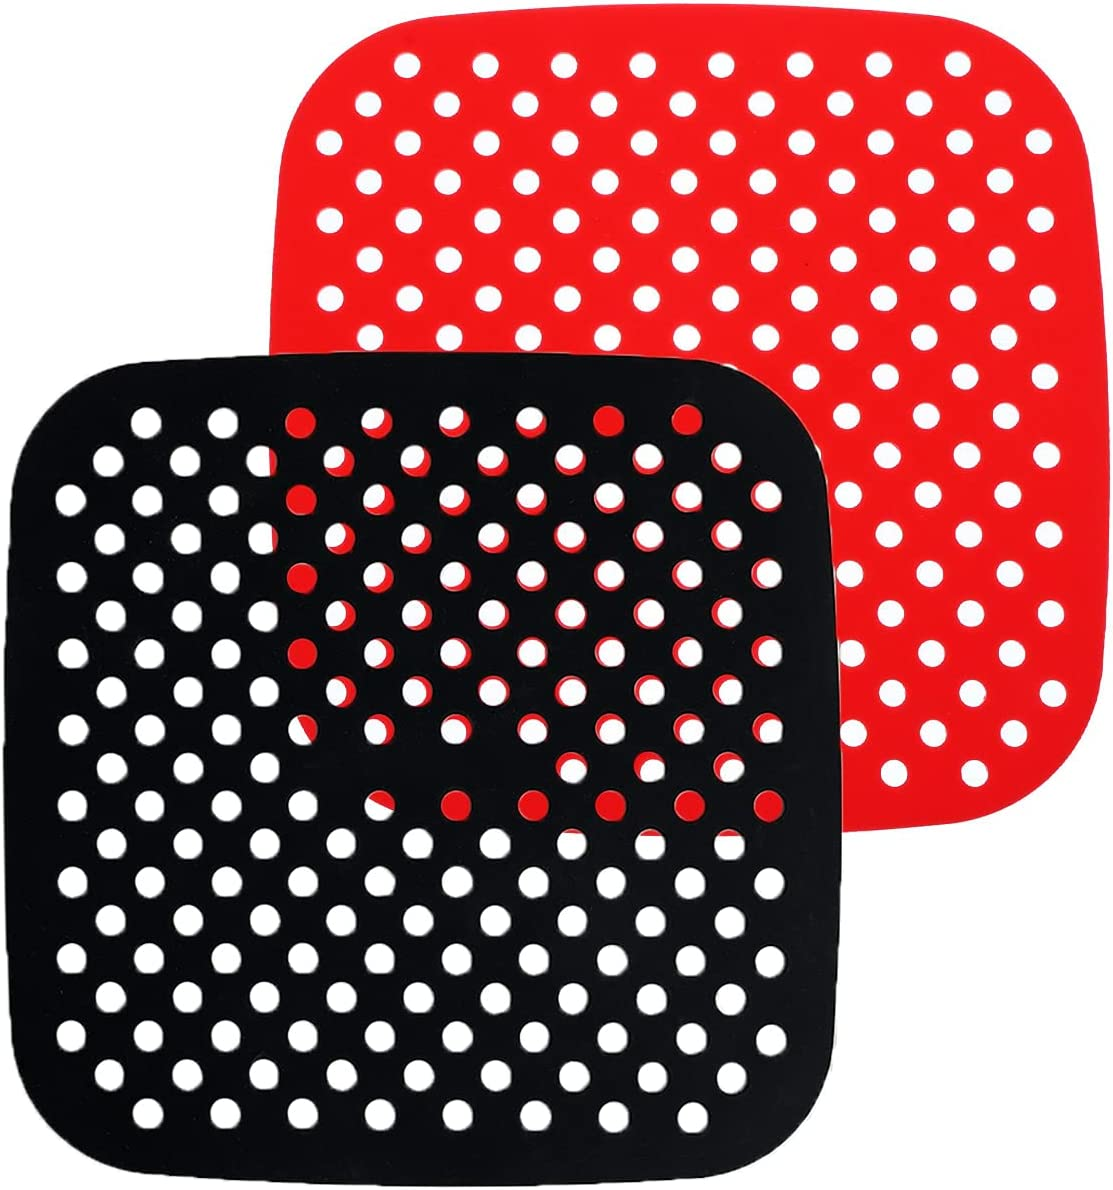 Air Fryer Silicone Liners – Reusable 8.5 Inch Square Non-Stick Food Safe Air Fryer Mats | Replacement of Flammable Parchment Liner Paper | For COSORI, INSTANT VORTEX, CHEFMAN, NUWAVE. (2-Pack)